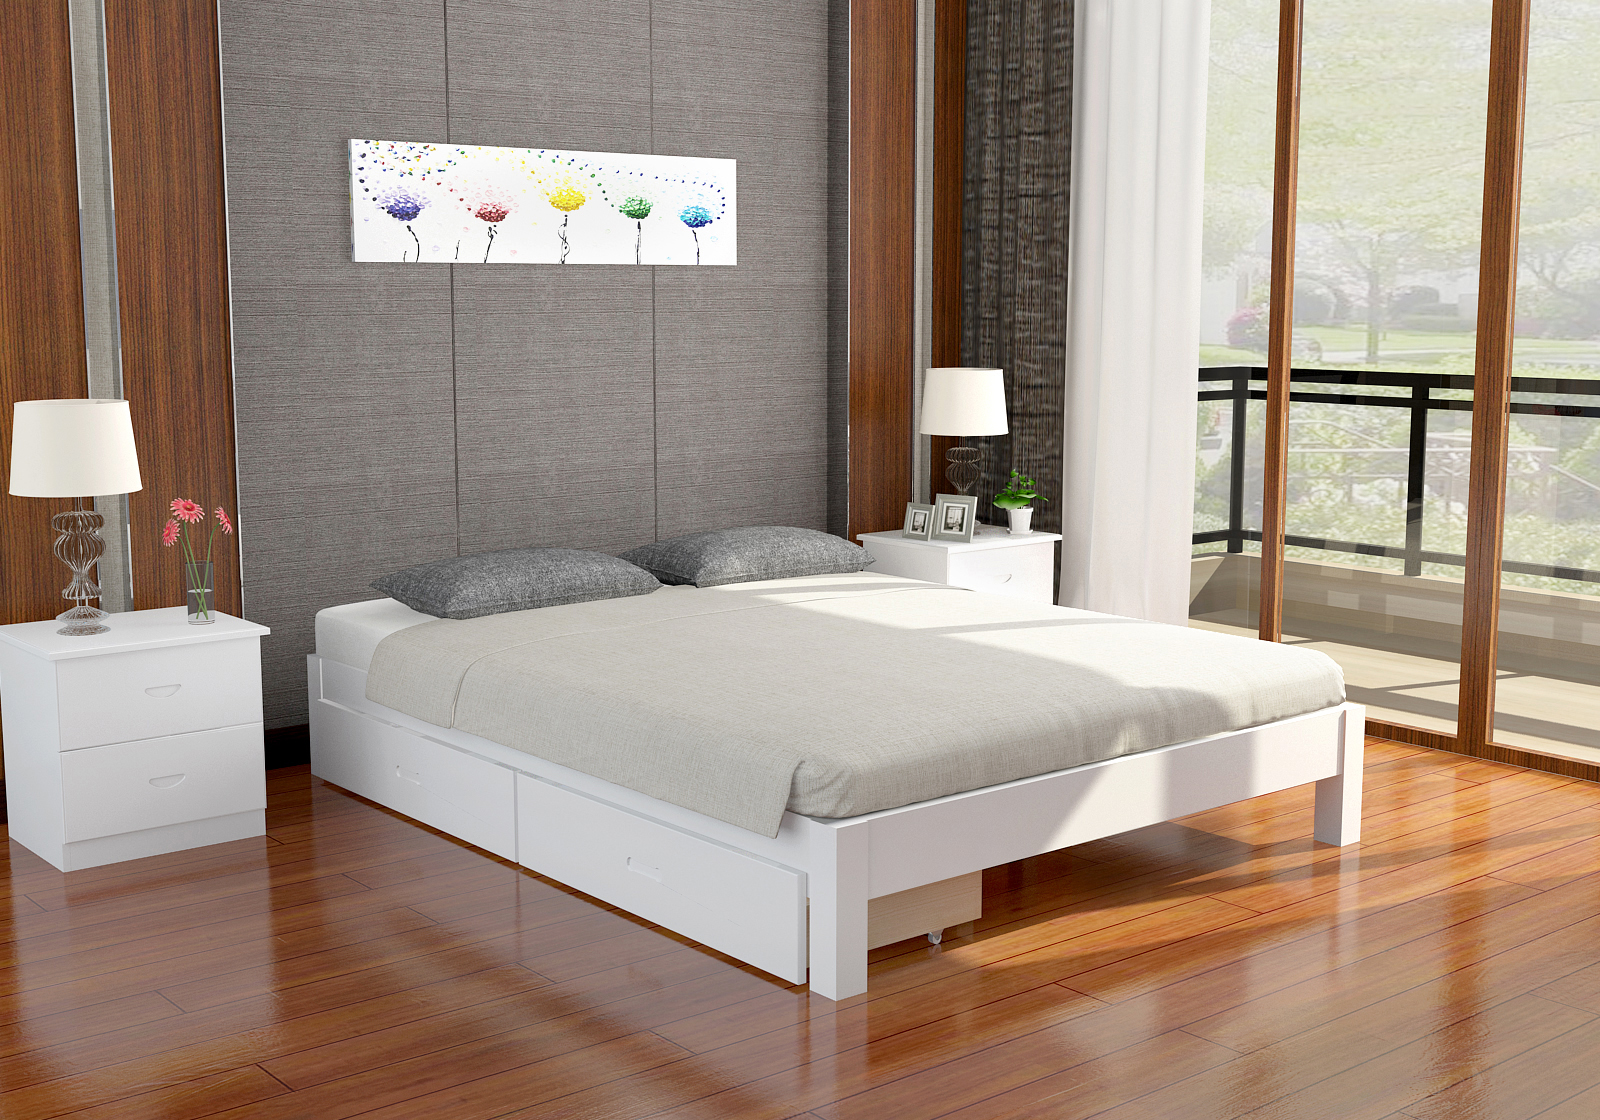 The new package post thickening of pure solid wood solid wood single frame double tatami bed widening 1.5 meters 1.8 meters